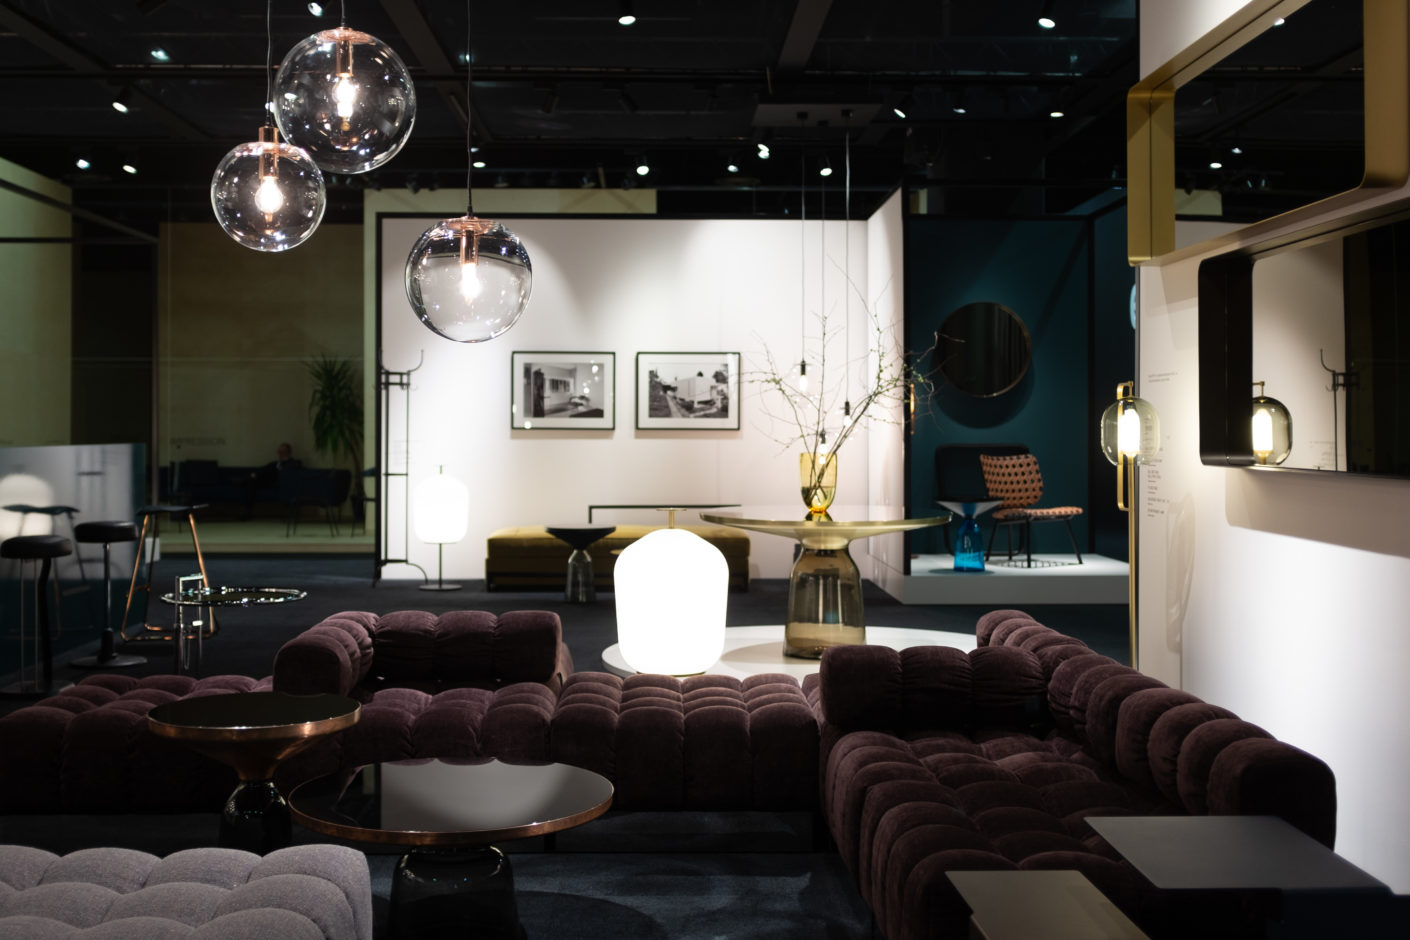 Image gallery imm cologne 2020